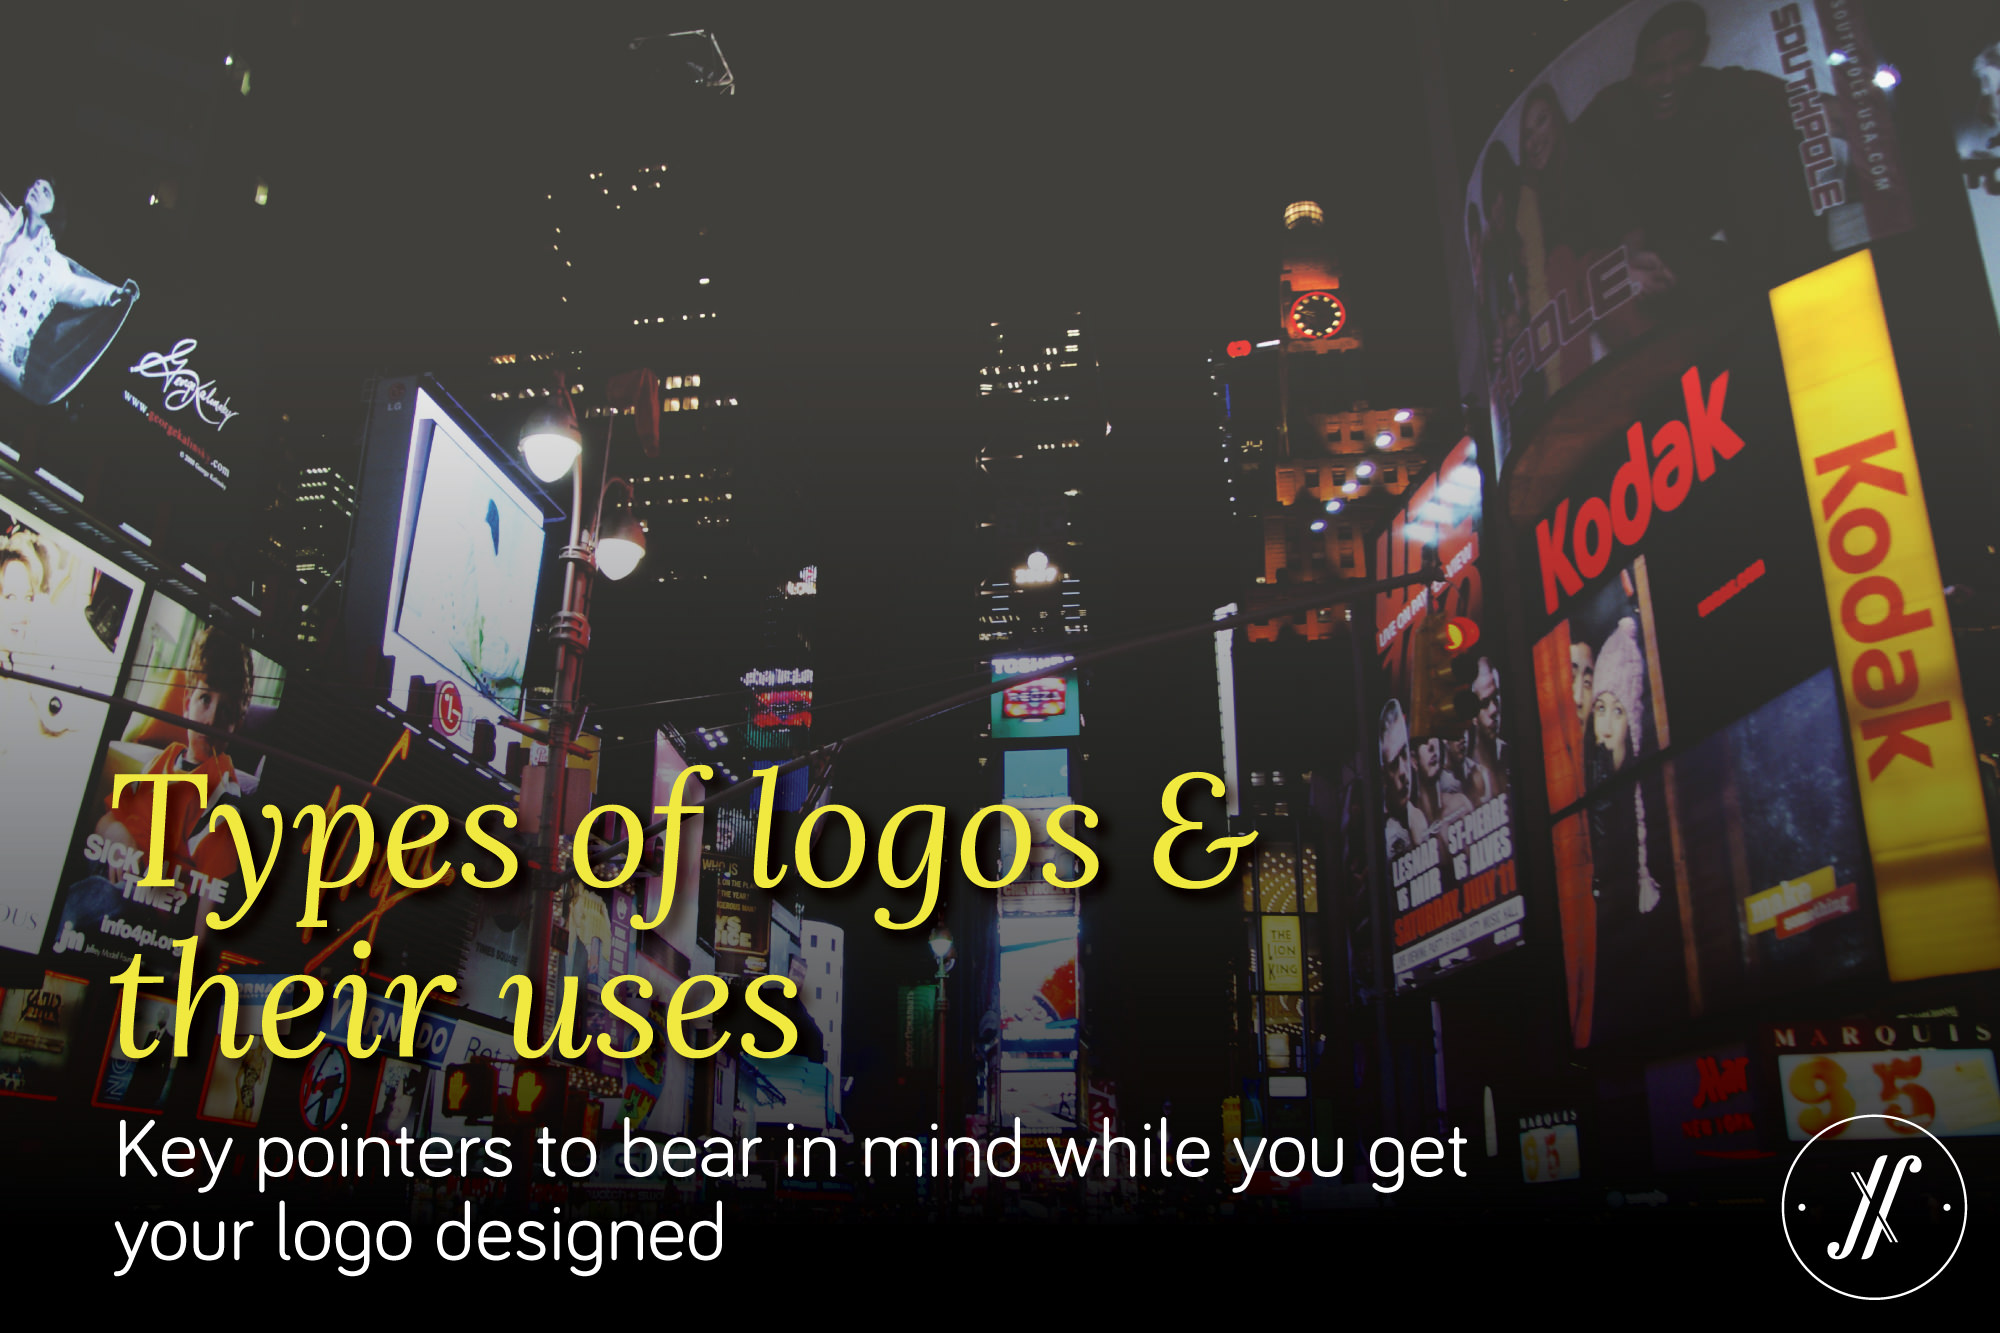 Yellow-Fishes-Branding-Strategy-and-brand-design-agency-Mumbai-Types-of-logos-and-their-uses.jpg